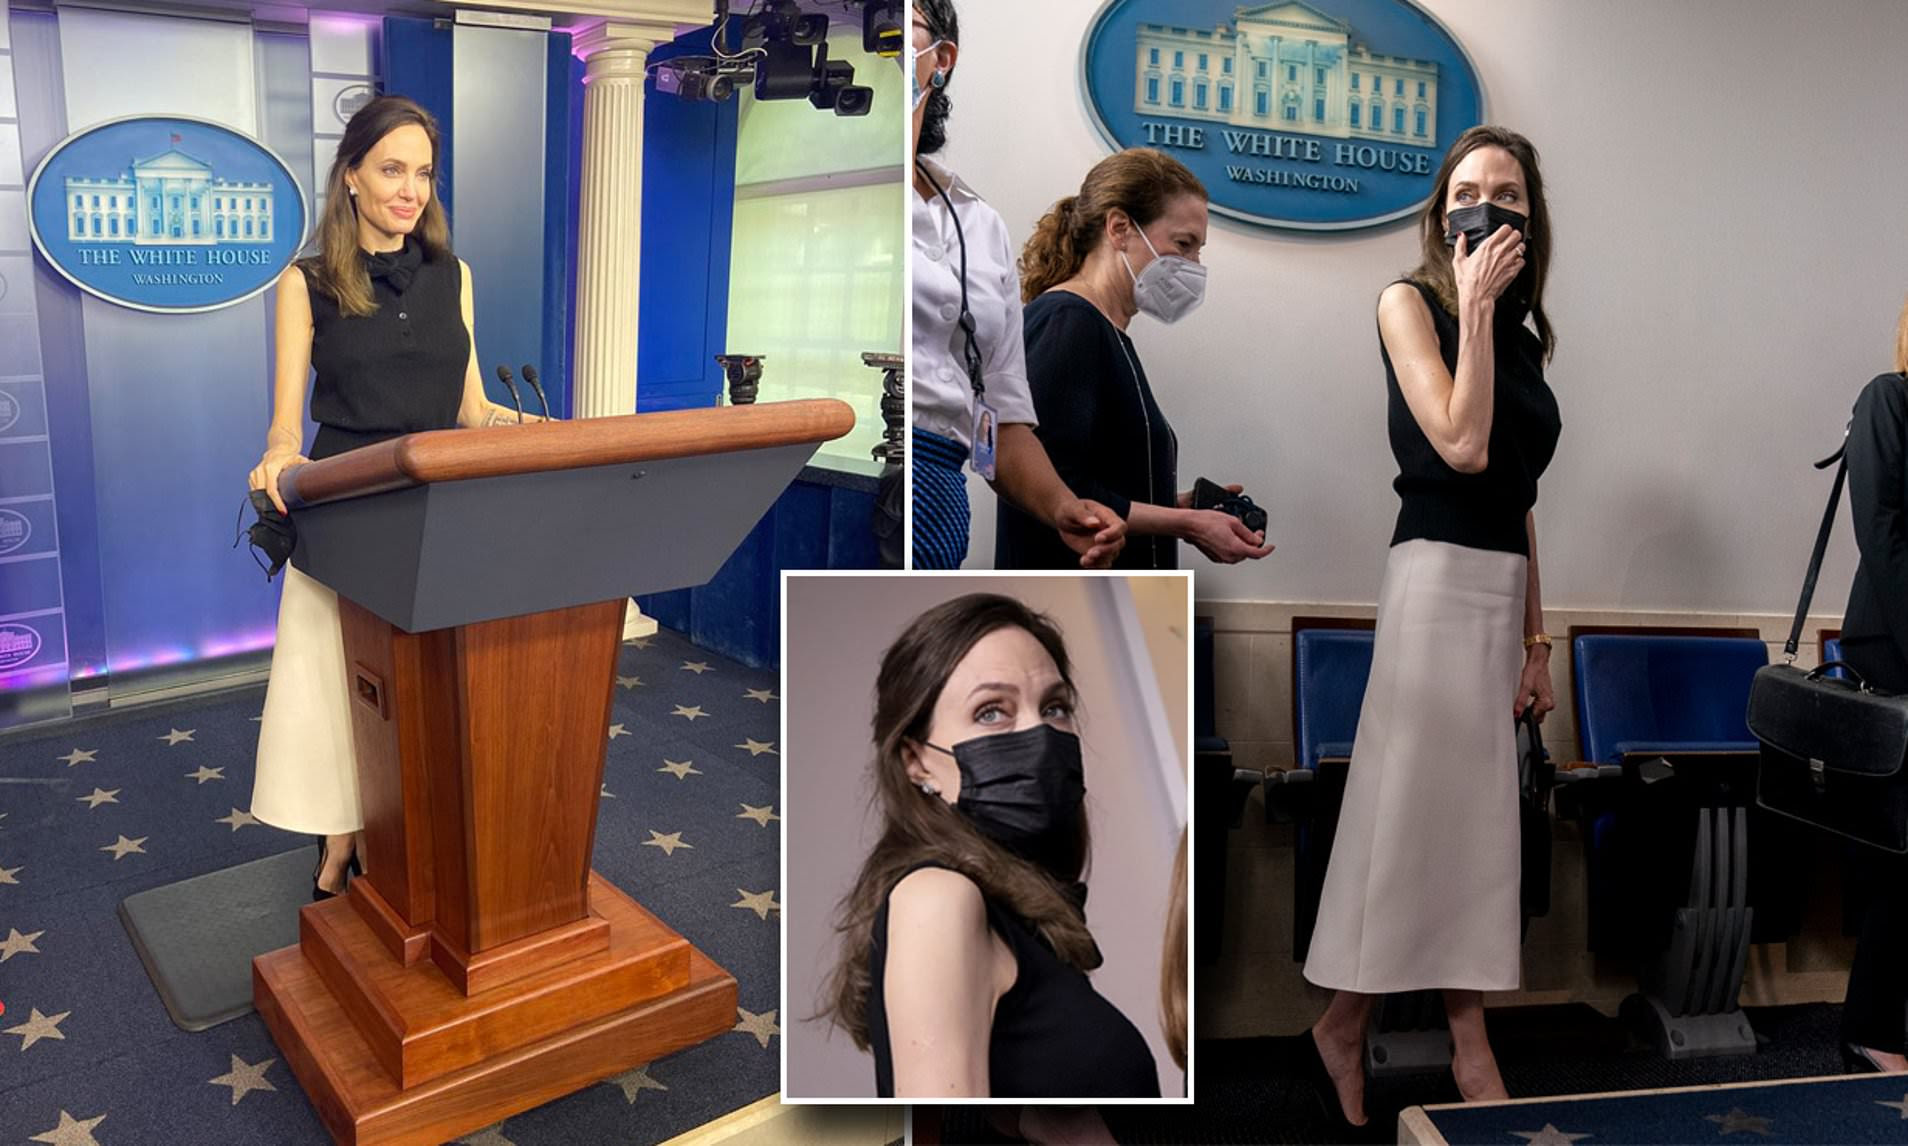 Angelina Jolie poses for pictures at Jen Psaki's lectern during surprise White House visit